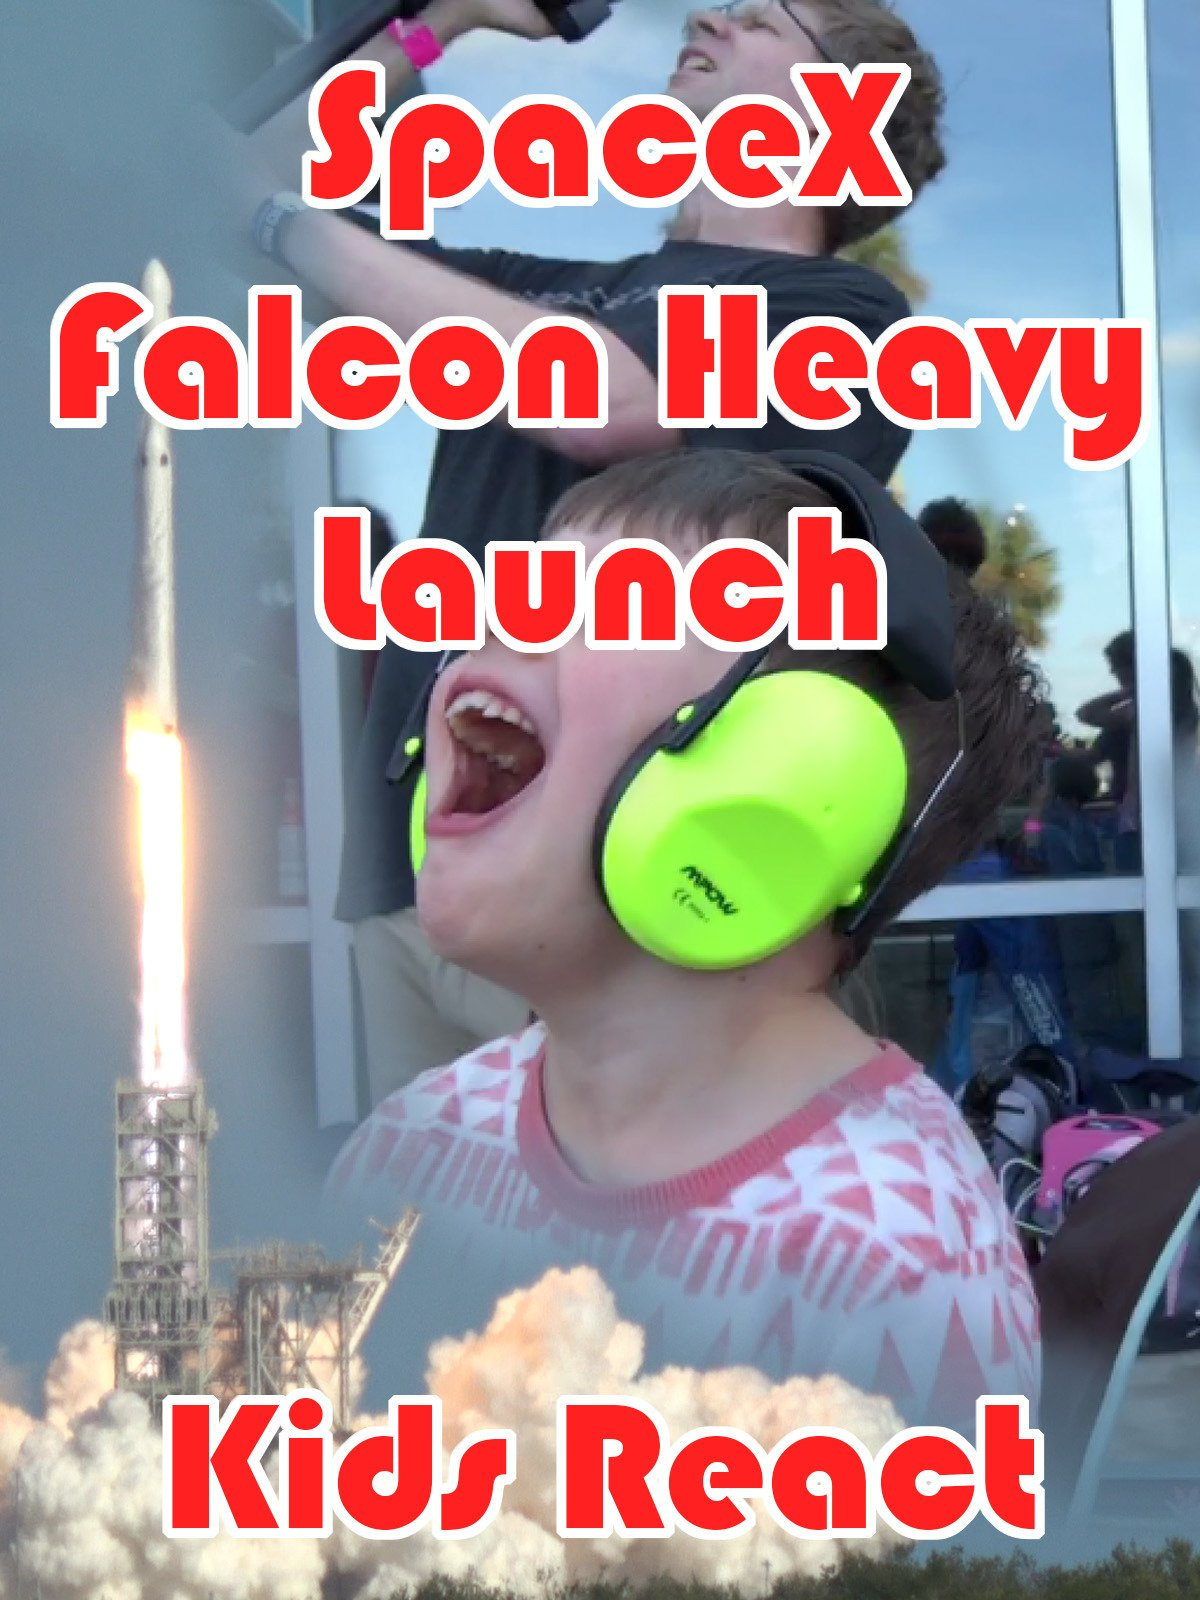 Clip: SpaceX Falcon Heavy Launch